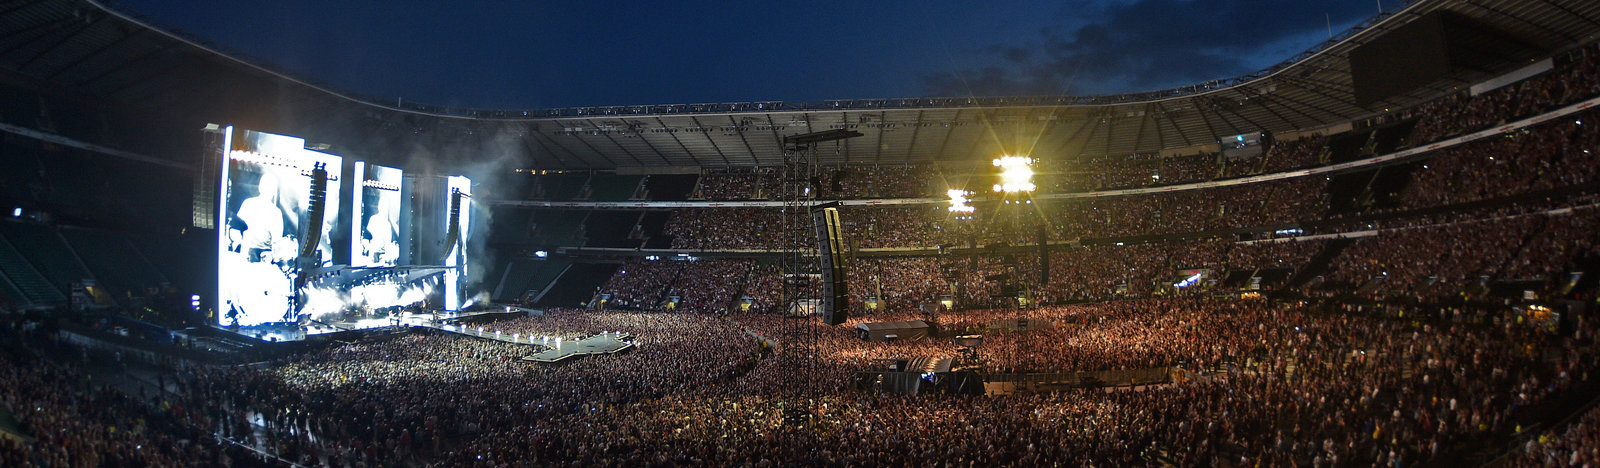 Rolling Stones concert at Twickenham Stadium